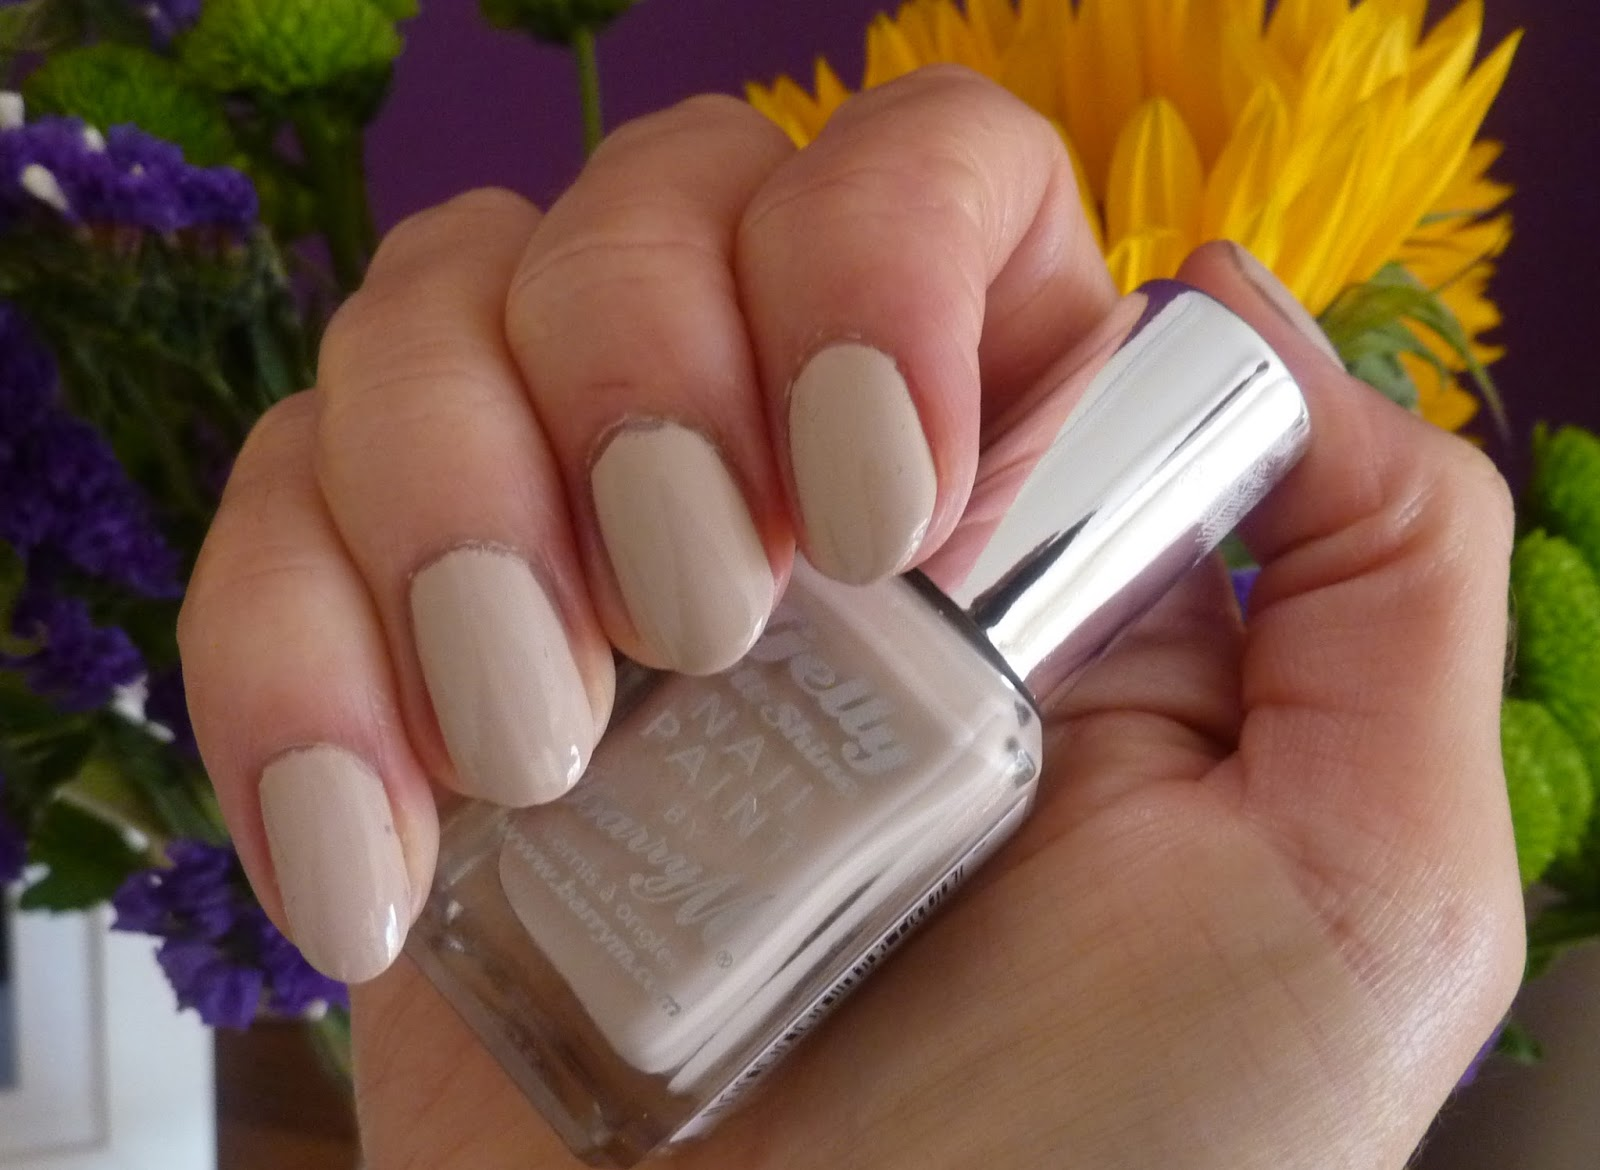 Barry M Nail Paint - Lychee reviews, photos filter ...